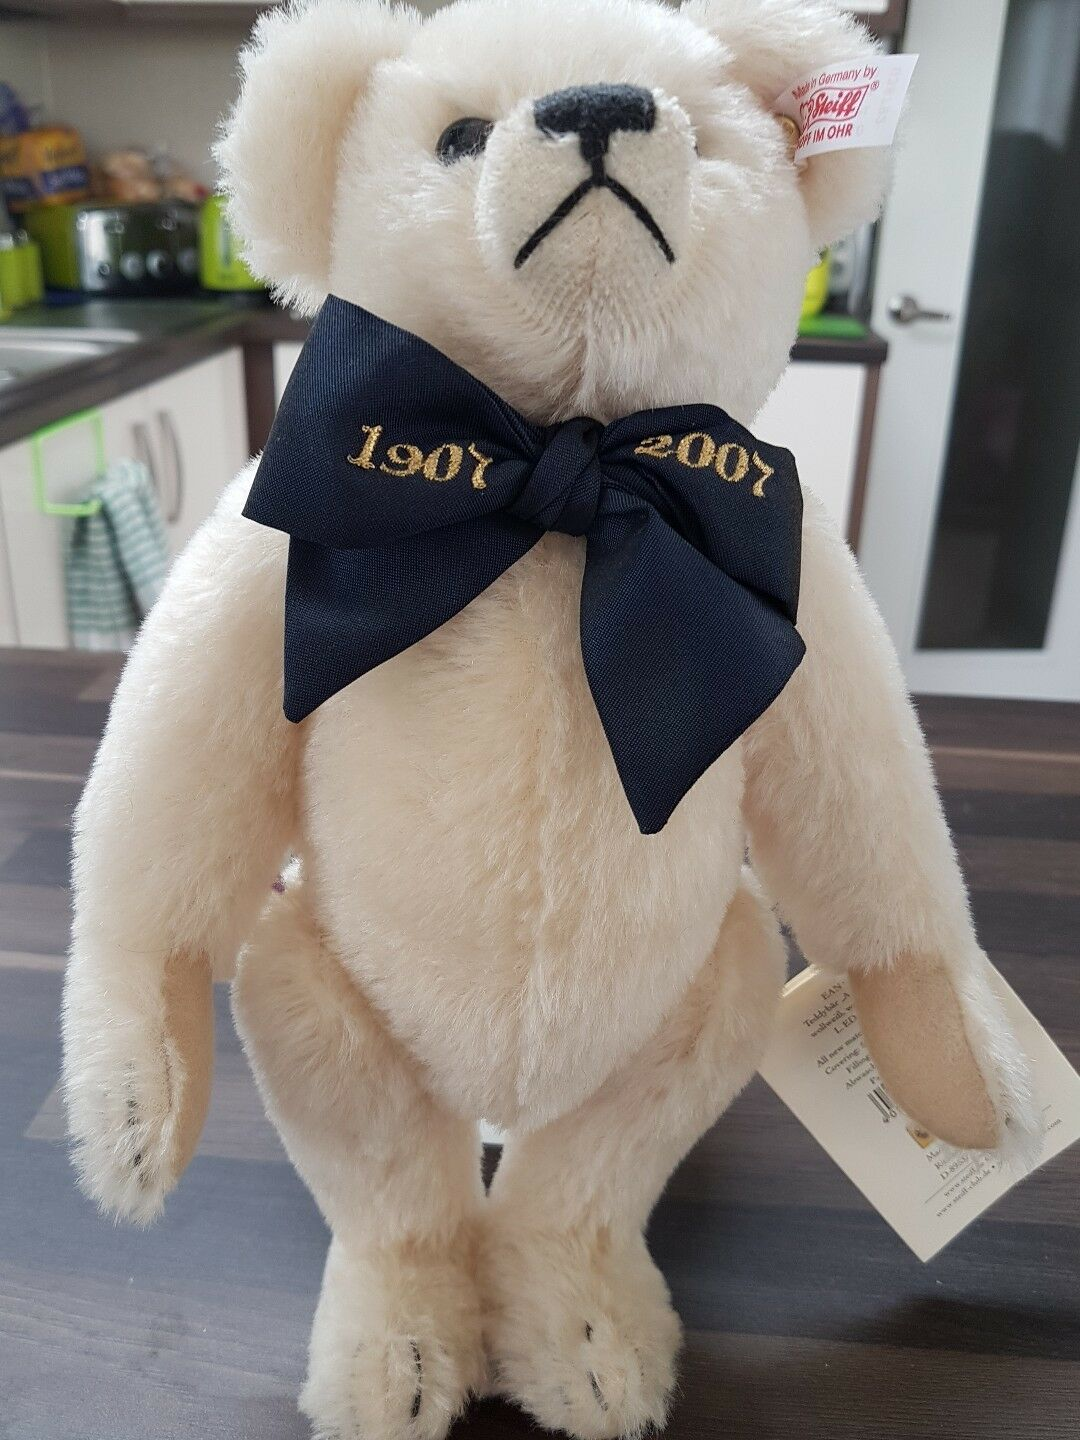 Steiff collectible bear 1907 to 2007